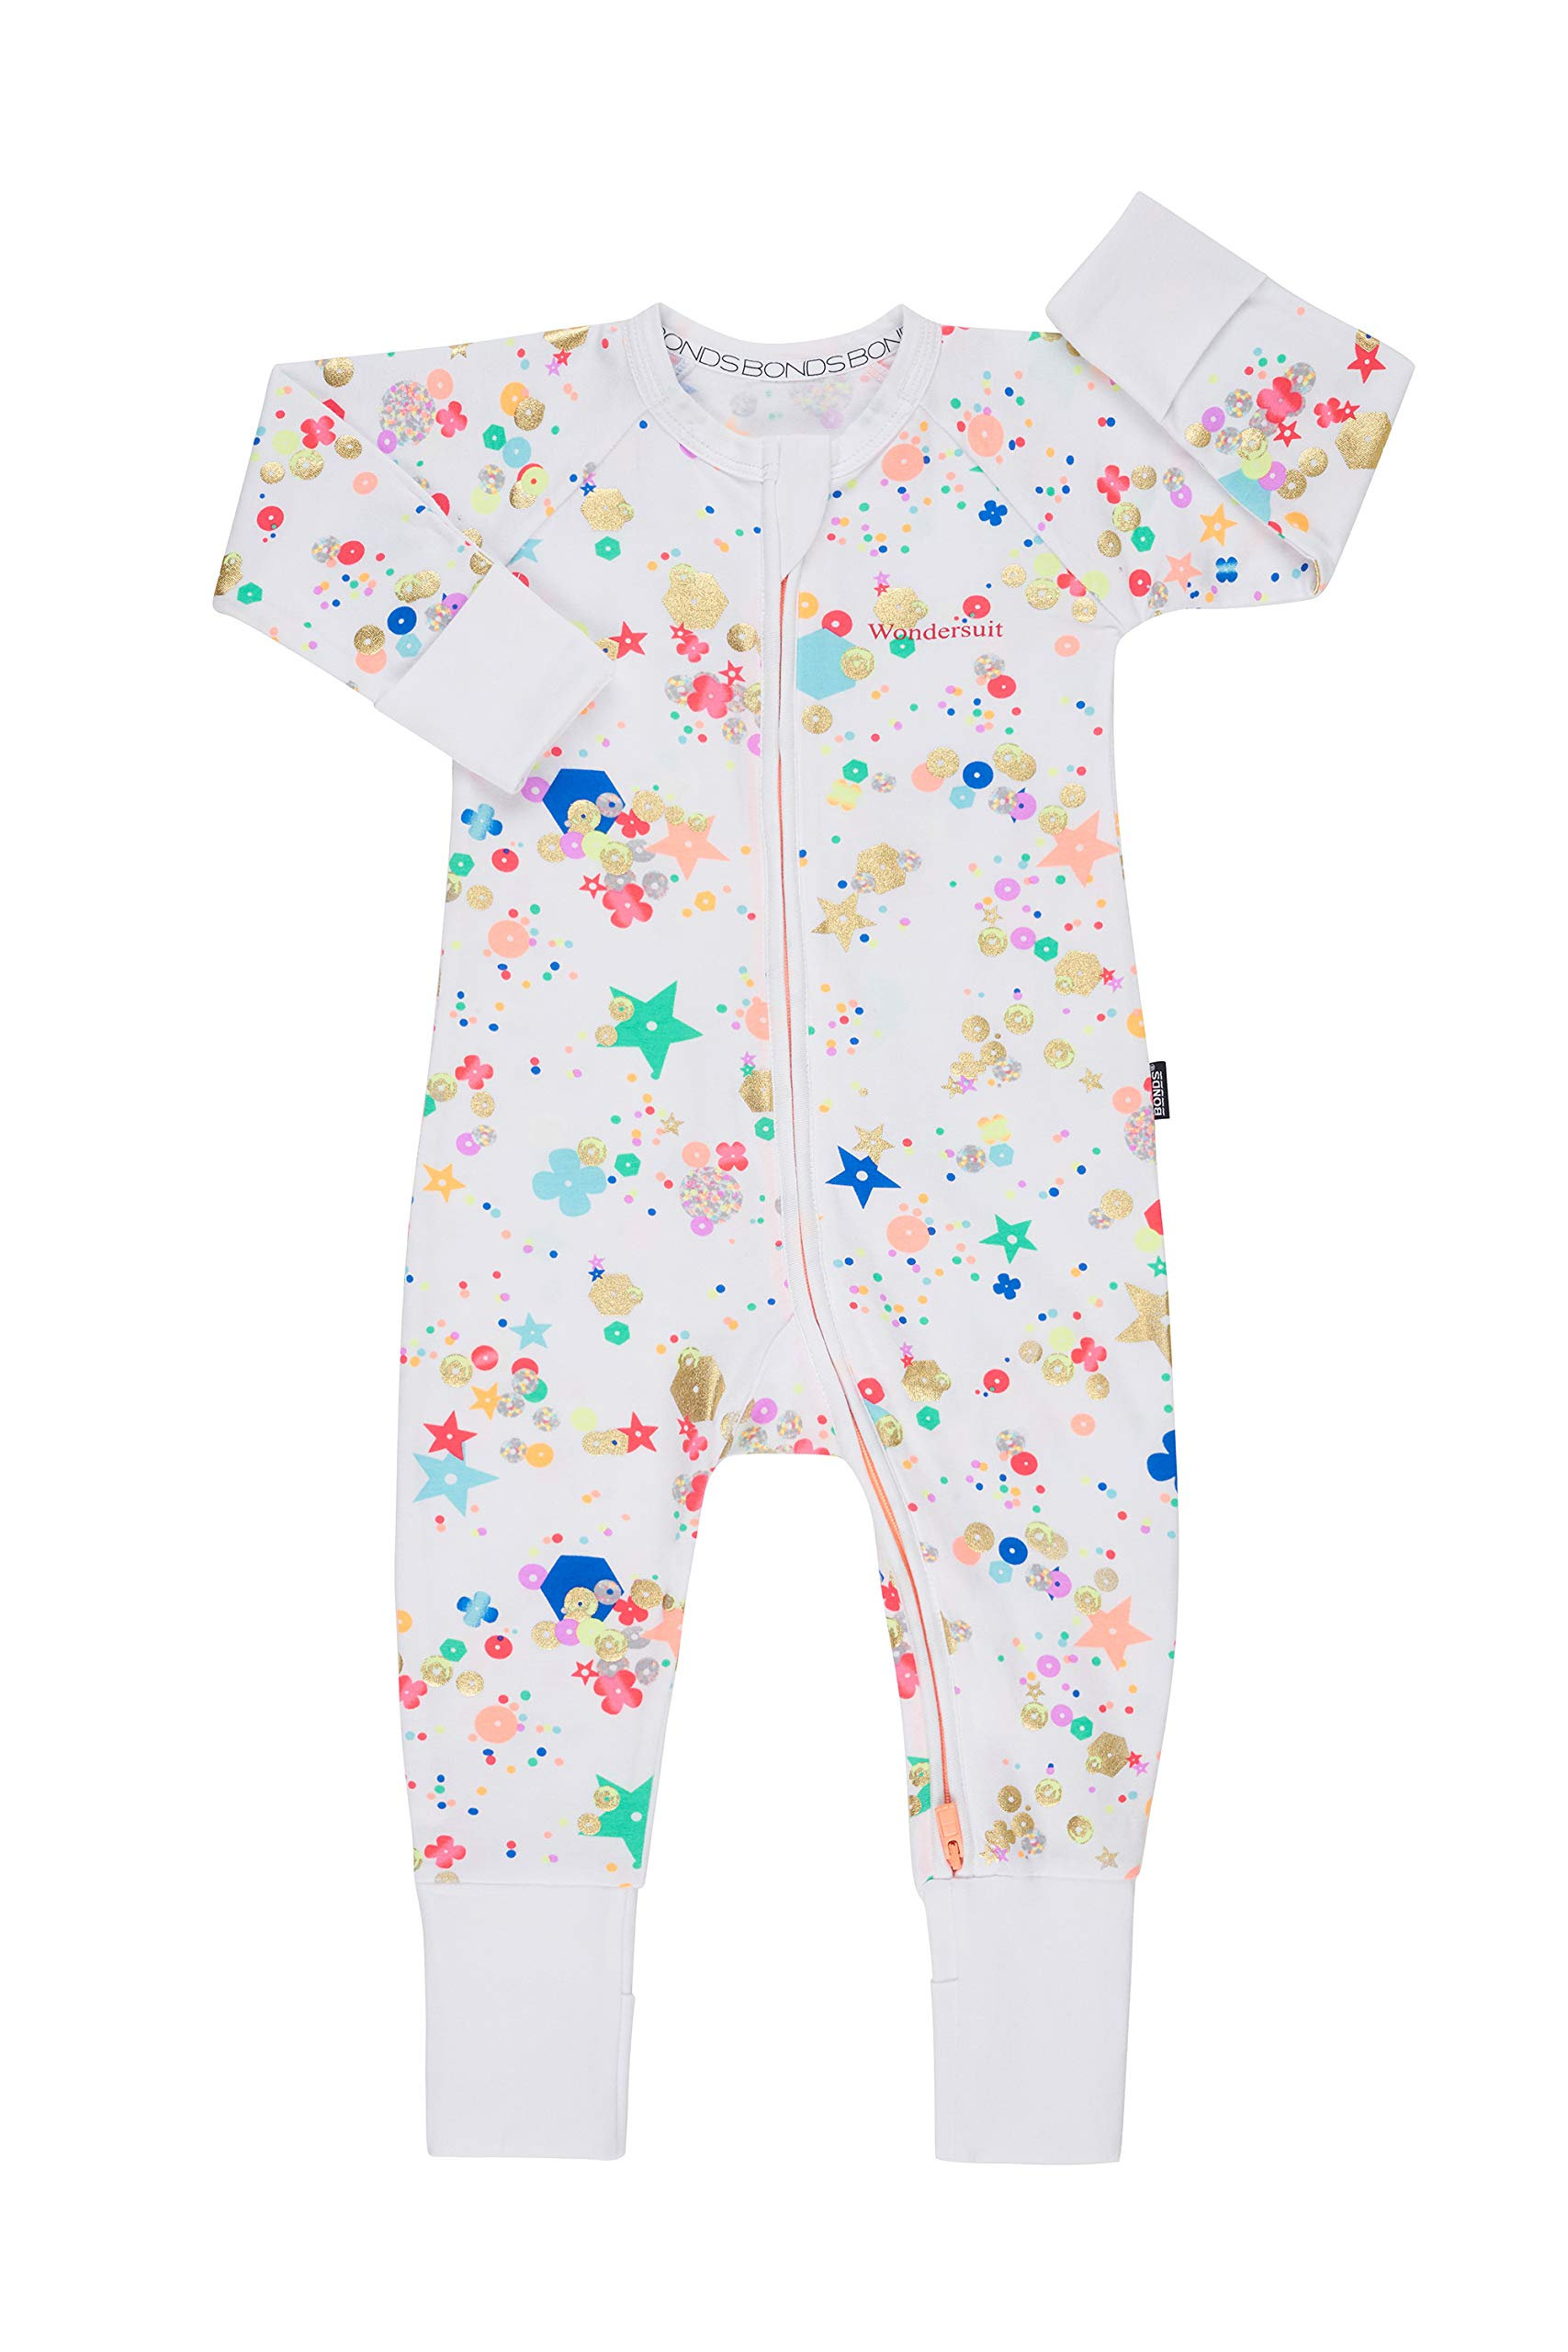 Bonds WONDERSUIT Zippy CHILL Bill Whirlwind, 18-24 Months